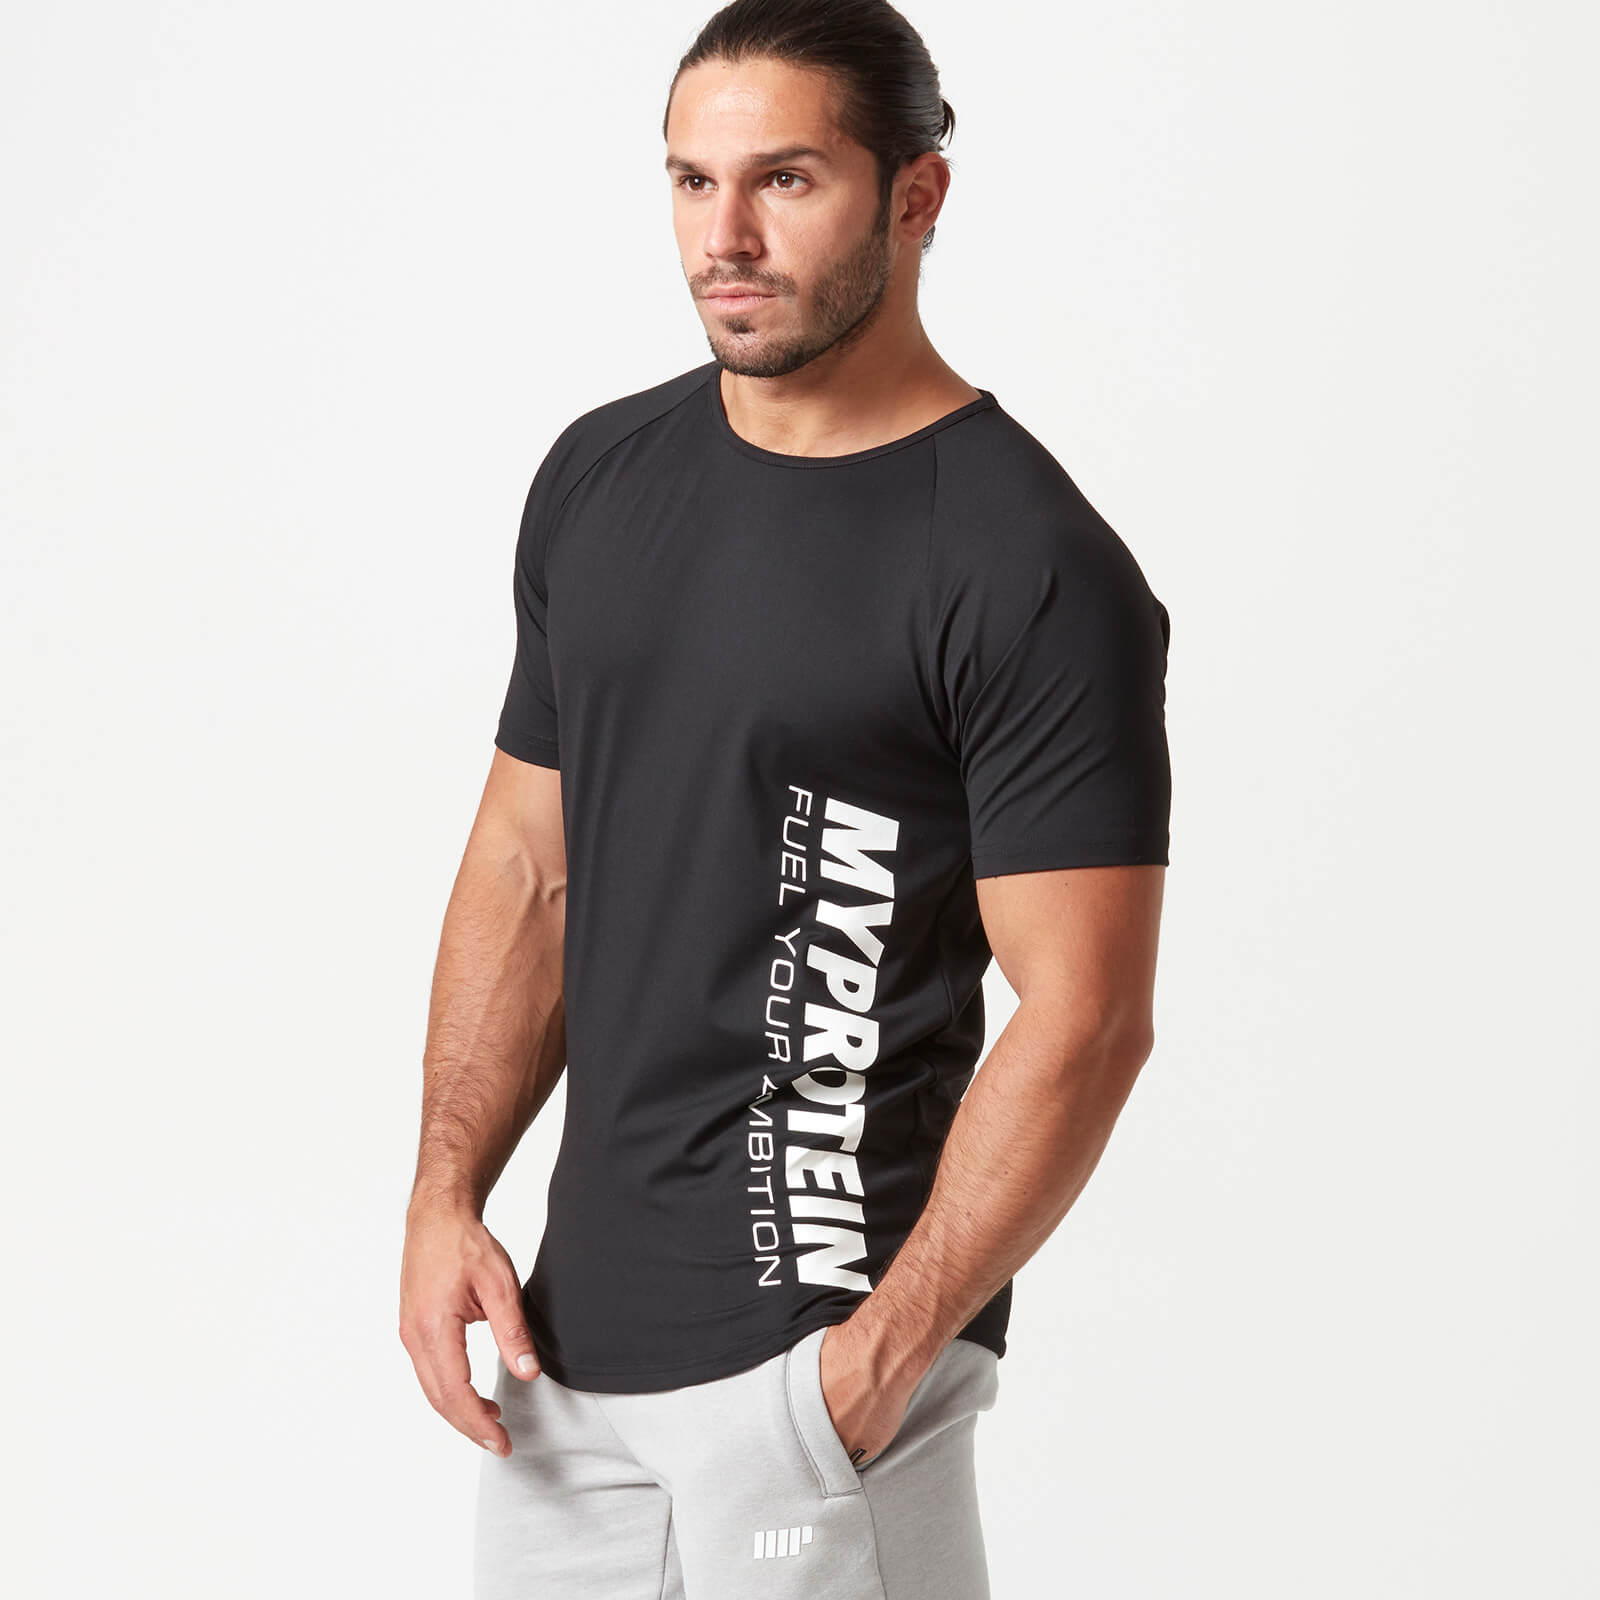 Bold Tech T-Shirt - Black - S